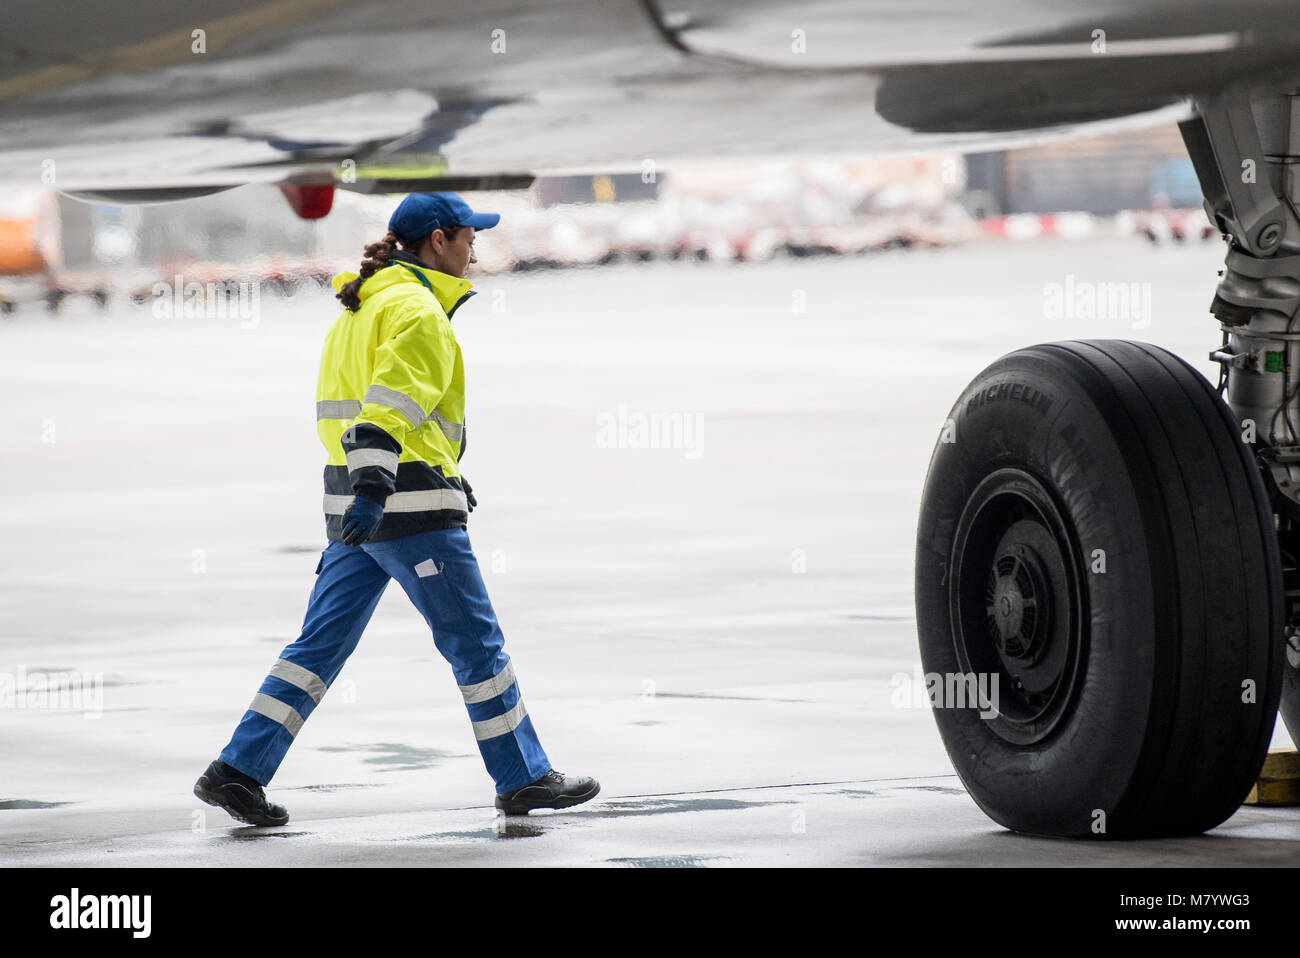 08 March 2018, Germany, Frankfurt: Sevim Sejdijaj, in charge of ground handling operations, inspects the underbody - Stock Image